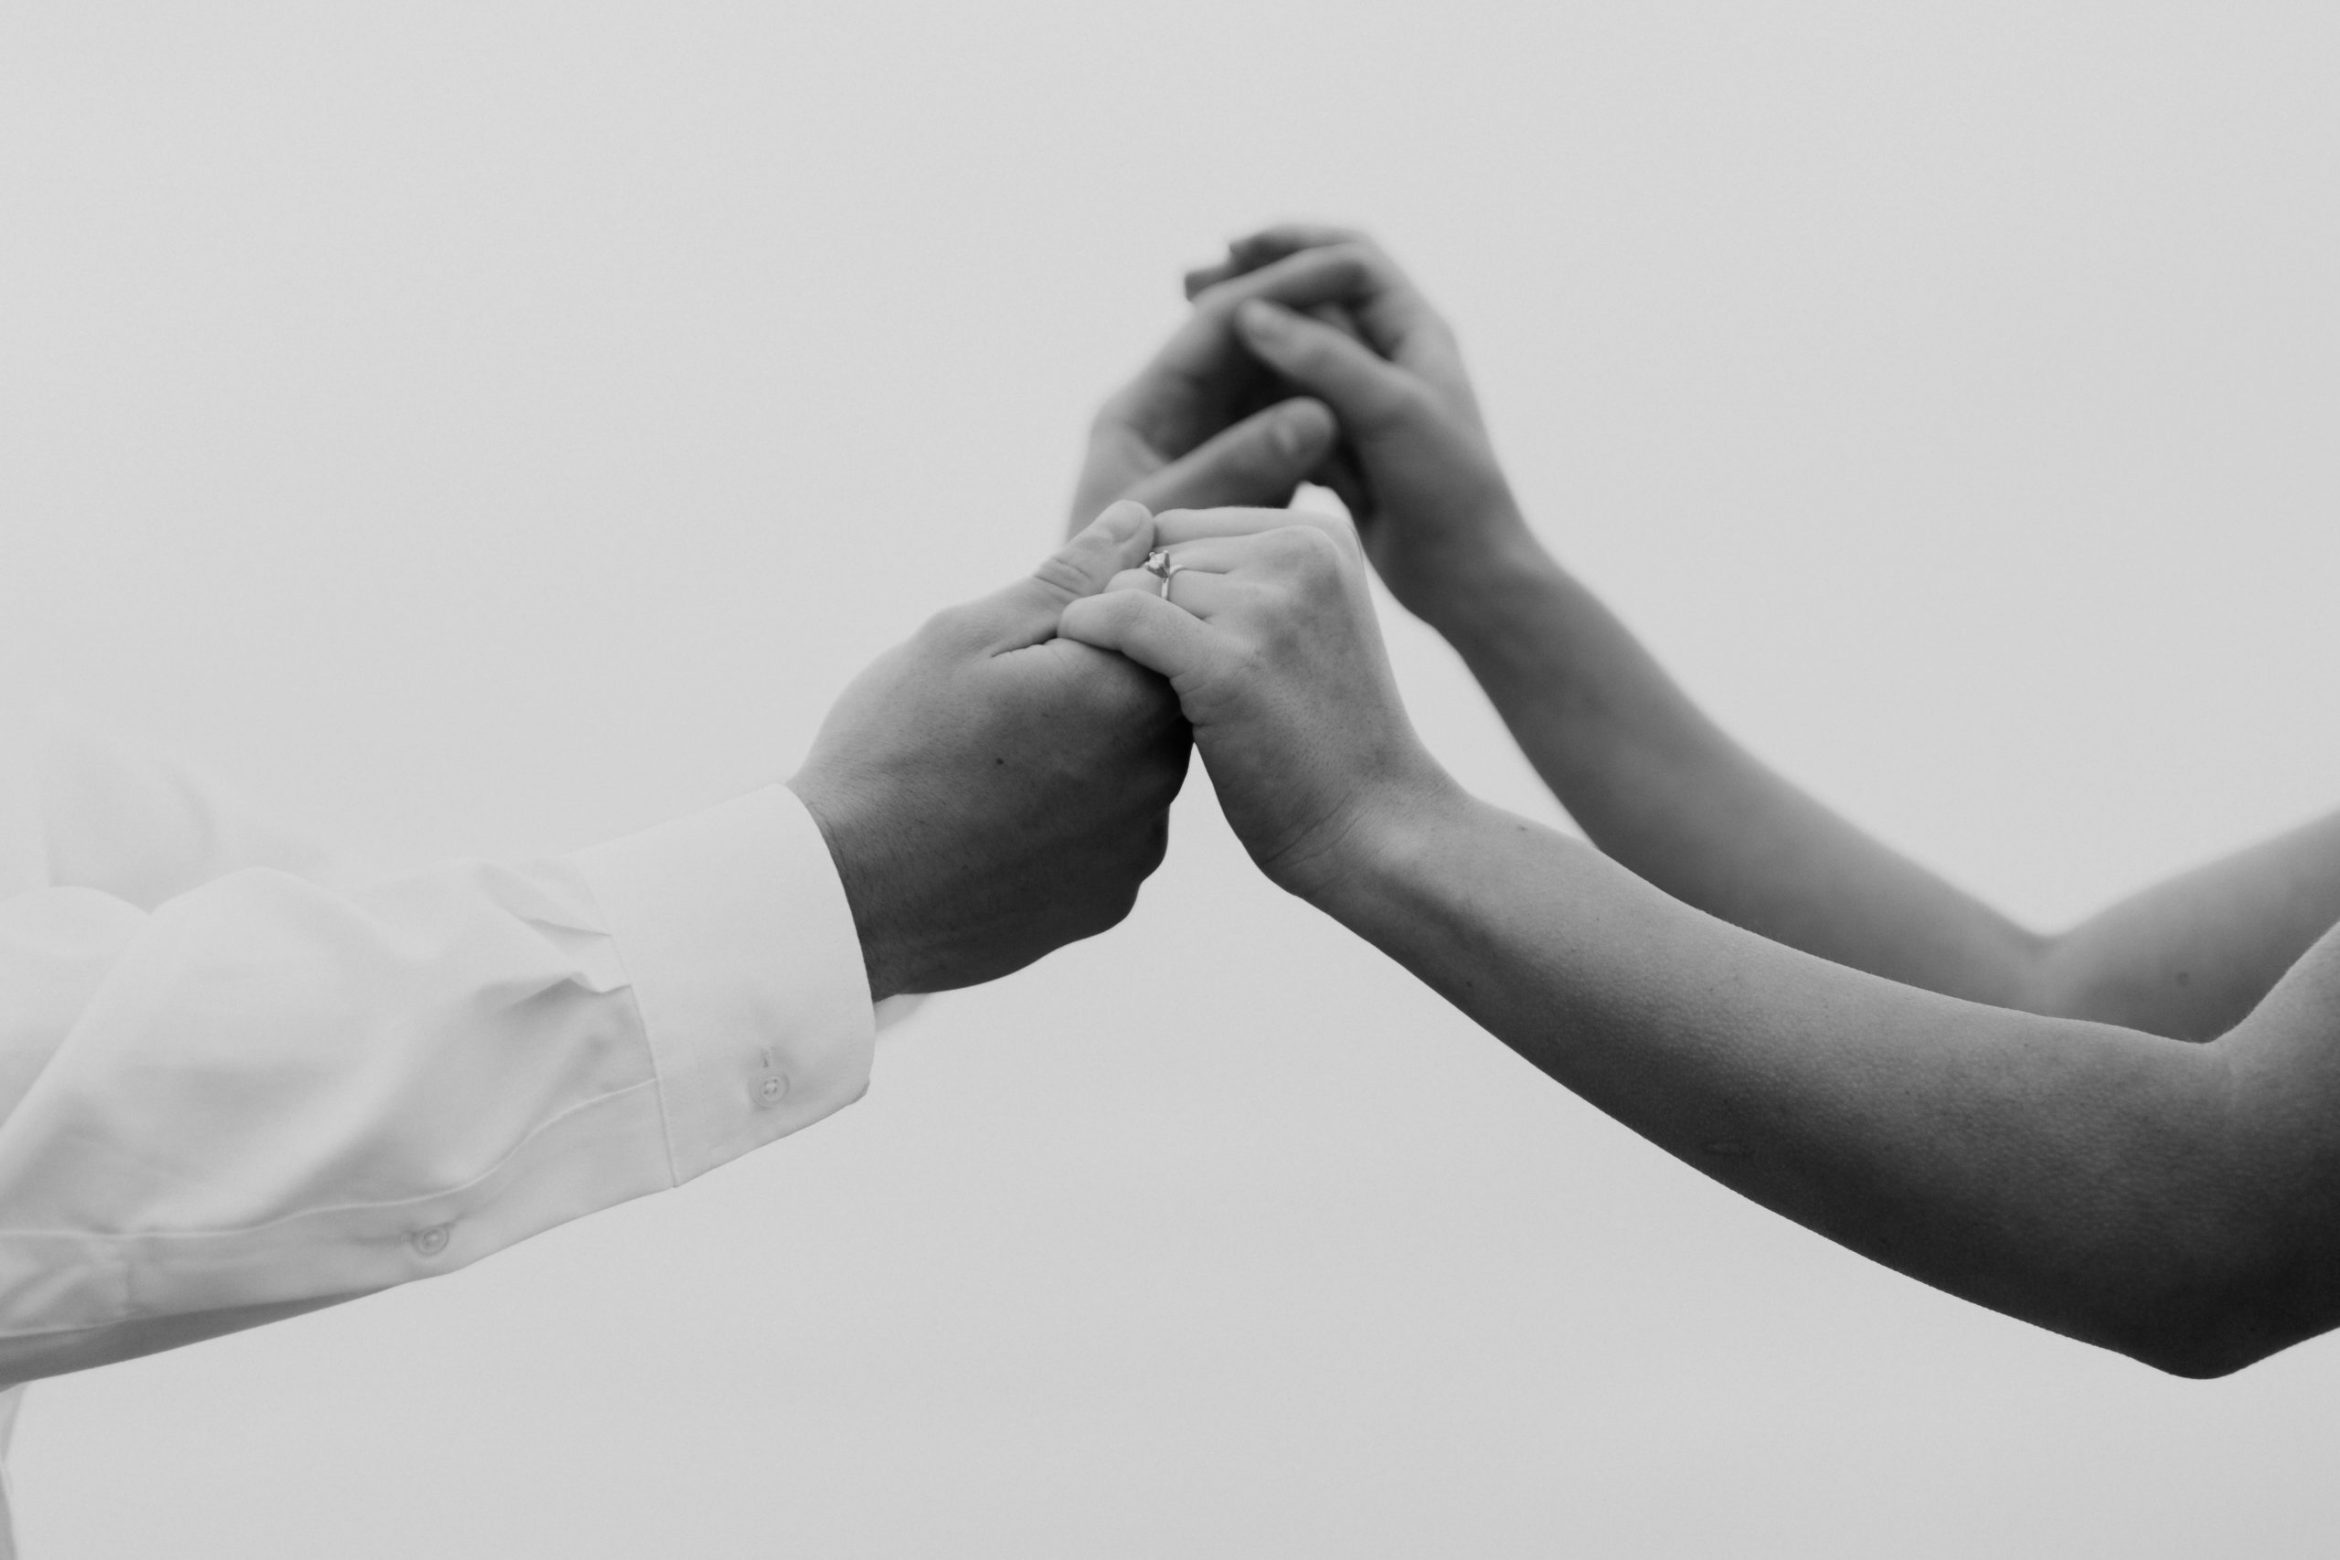 Couple holds hands in black and white image